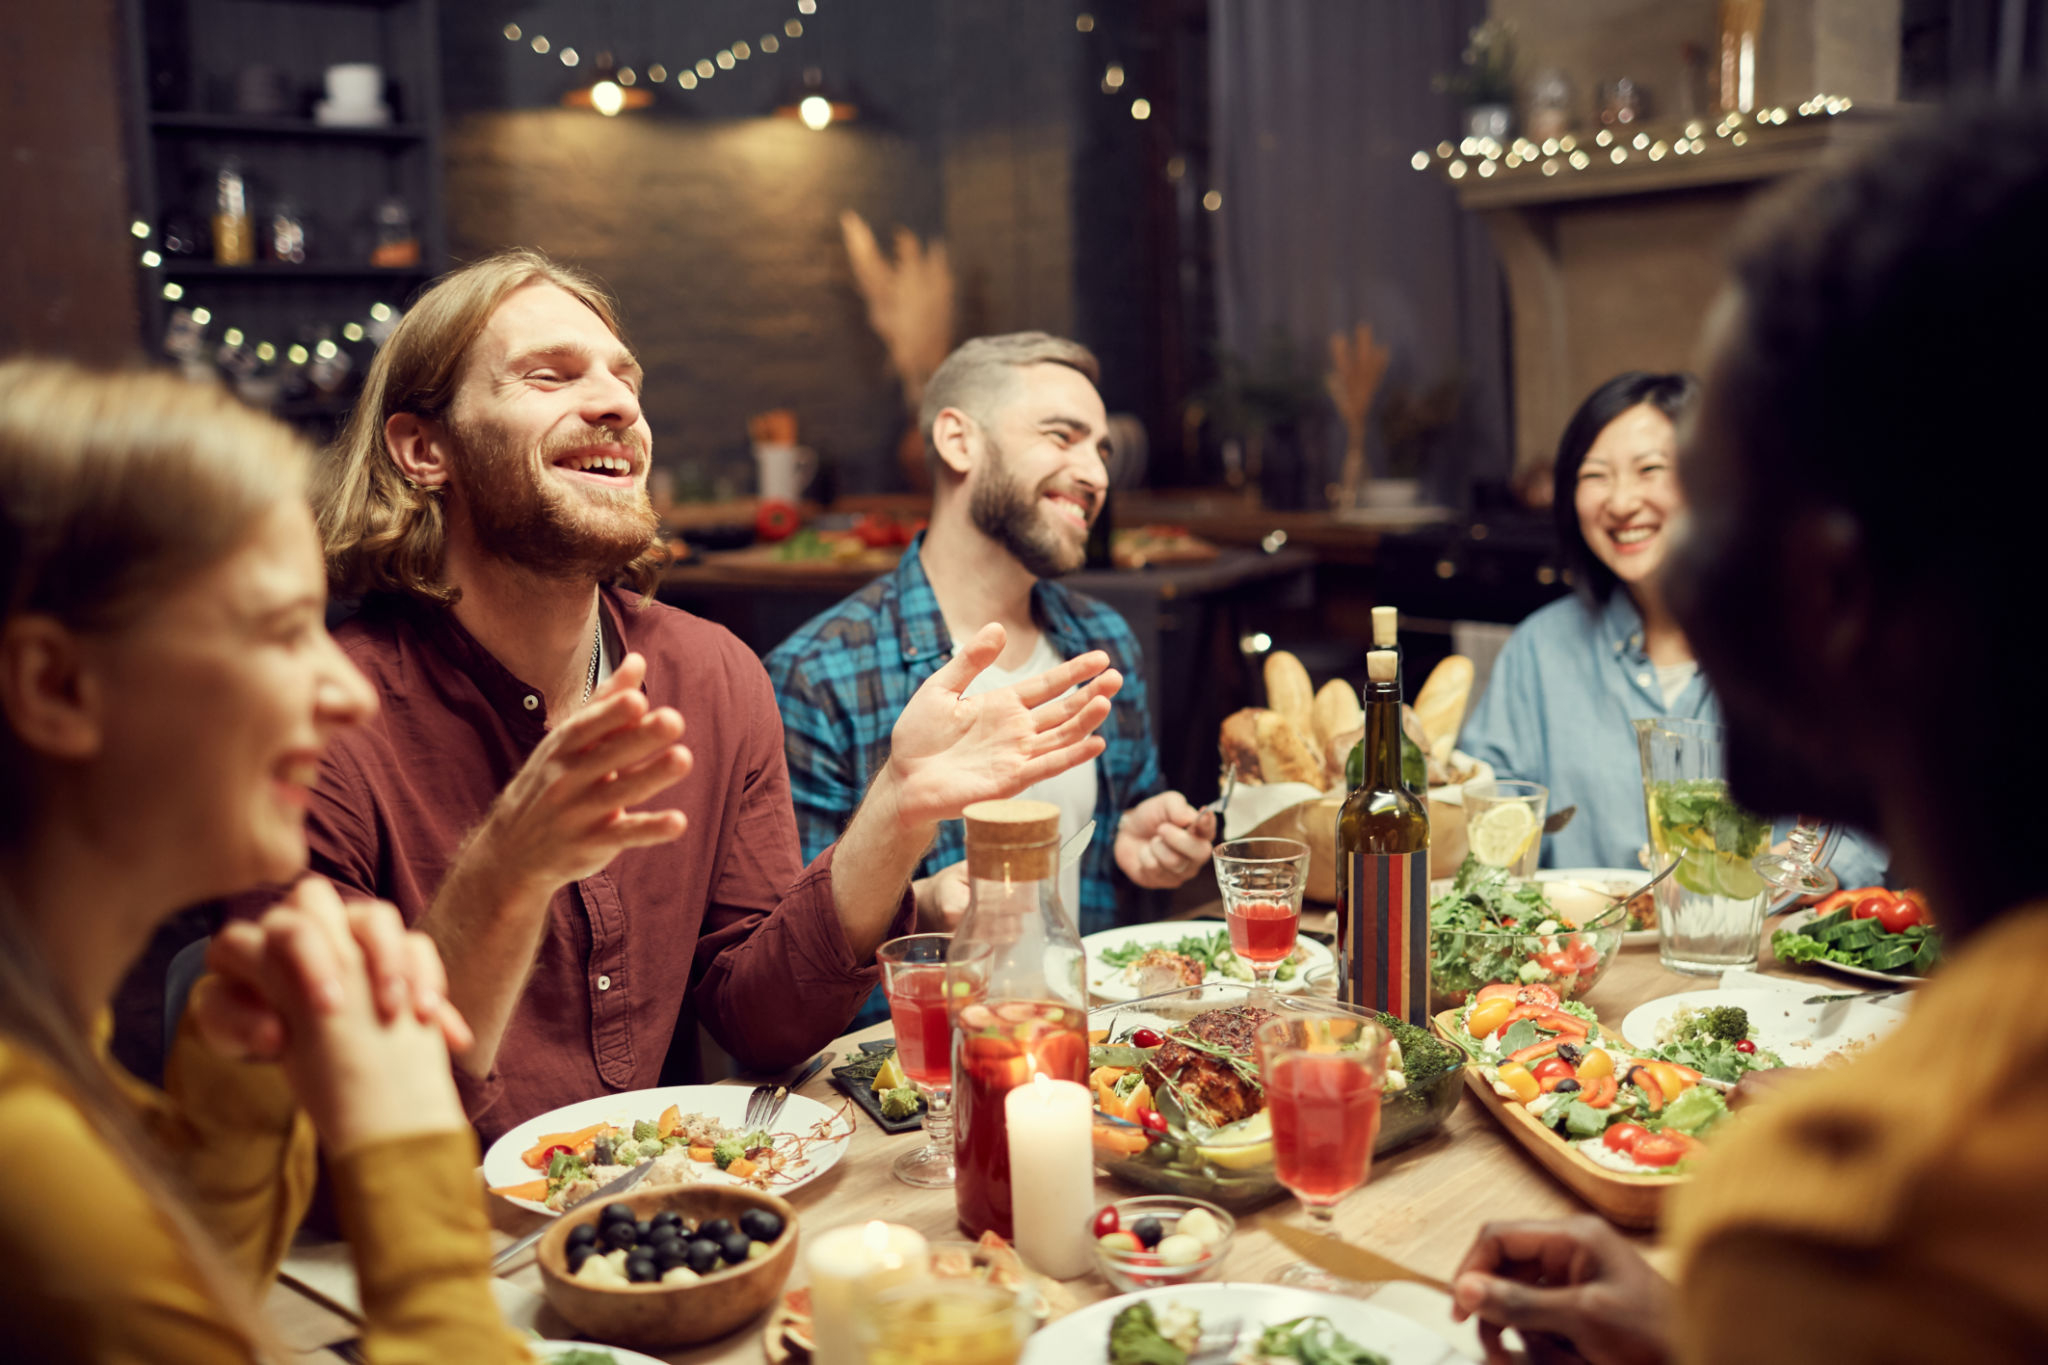 people laughing at dinner party table